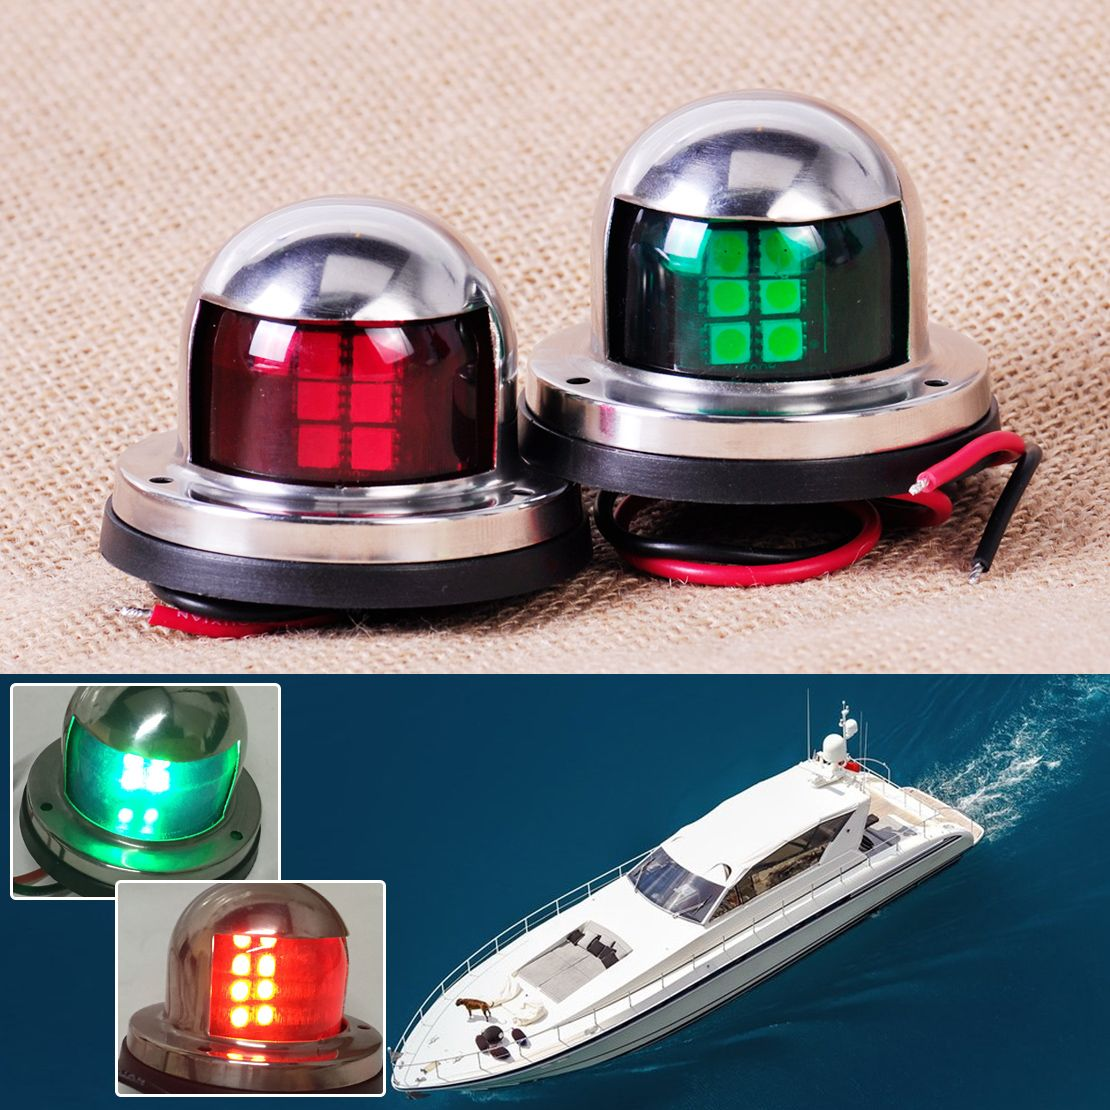 CITALL 1 <font><b>Pair</b></font> Stainless Steel 12V LED Bow Navigation Light Red Green Sailing Signal Light for Marine Boat Yacht